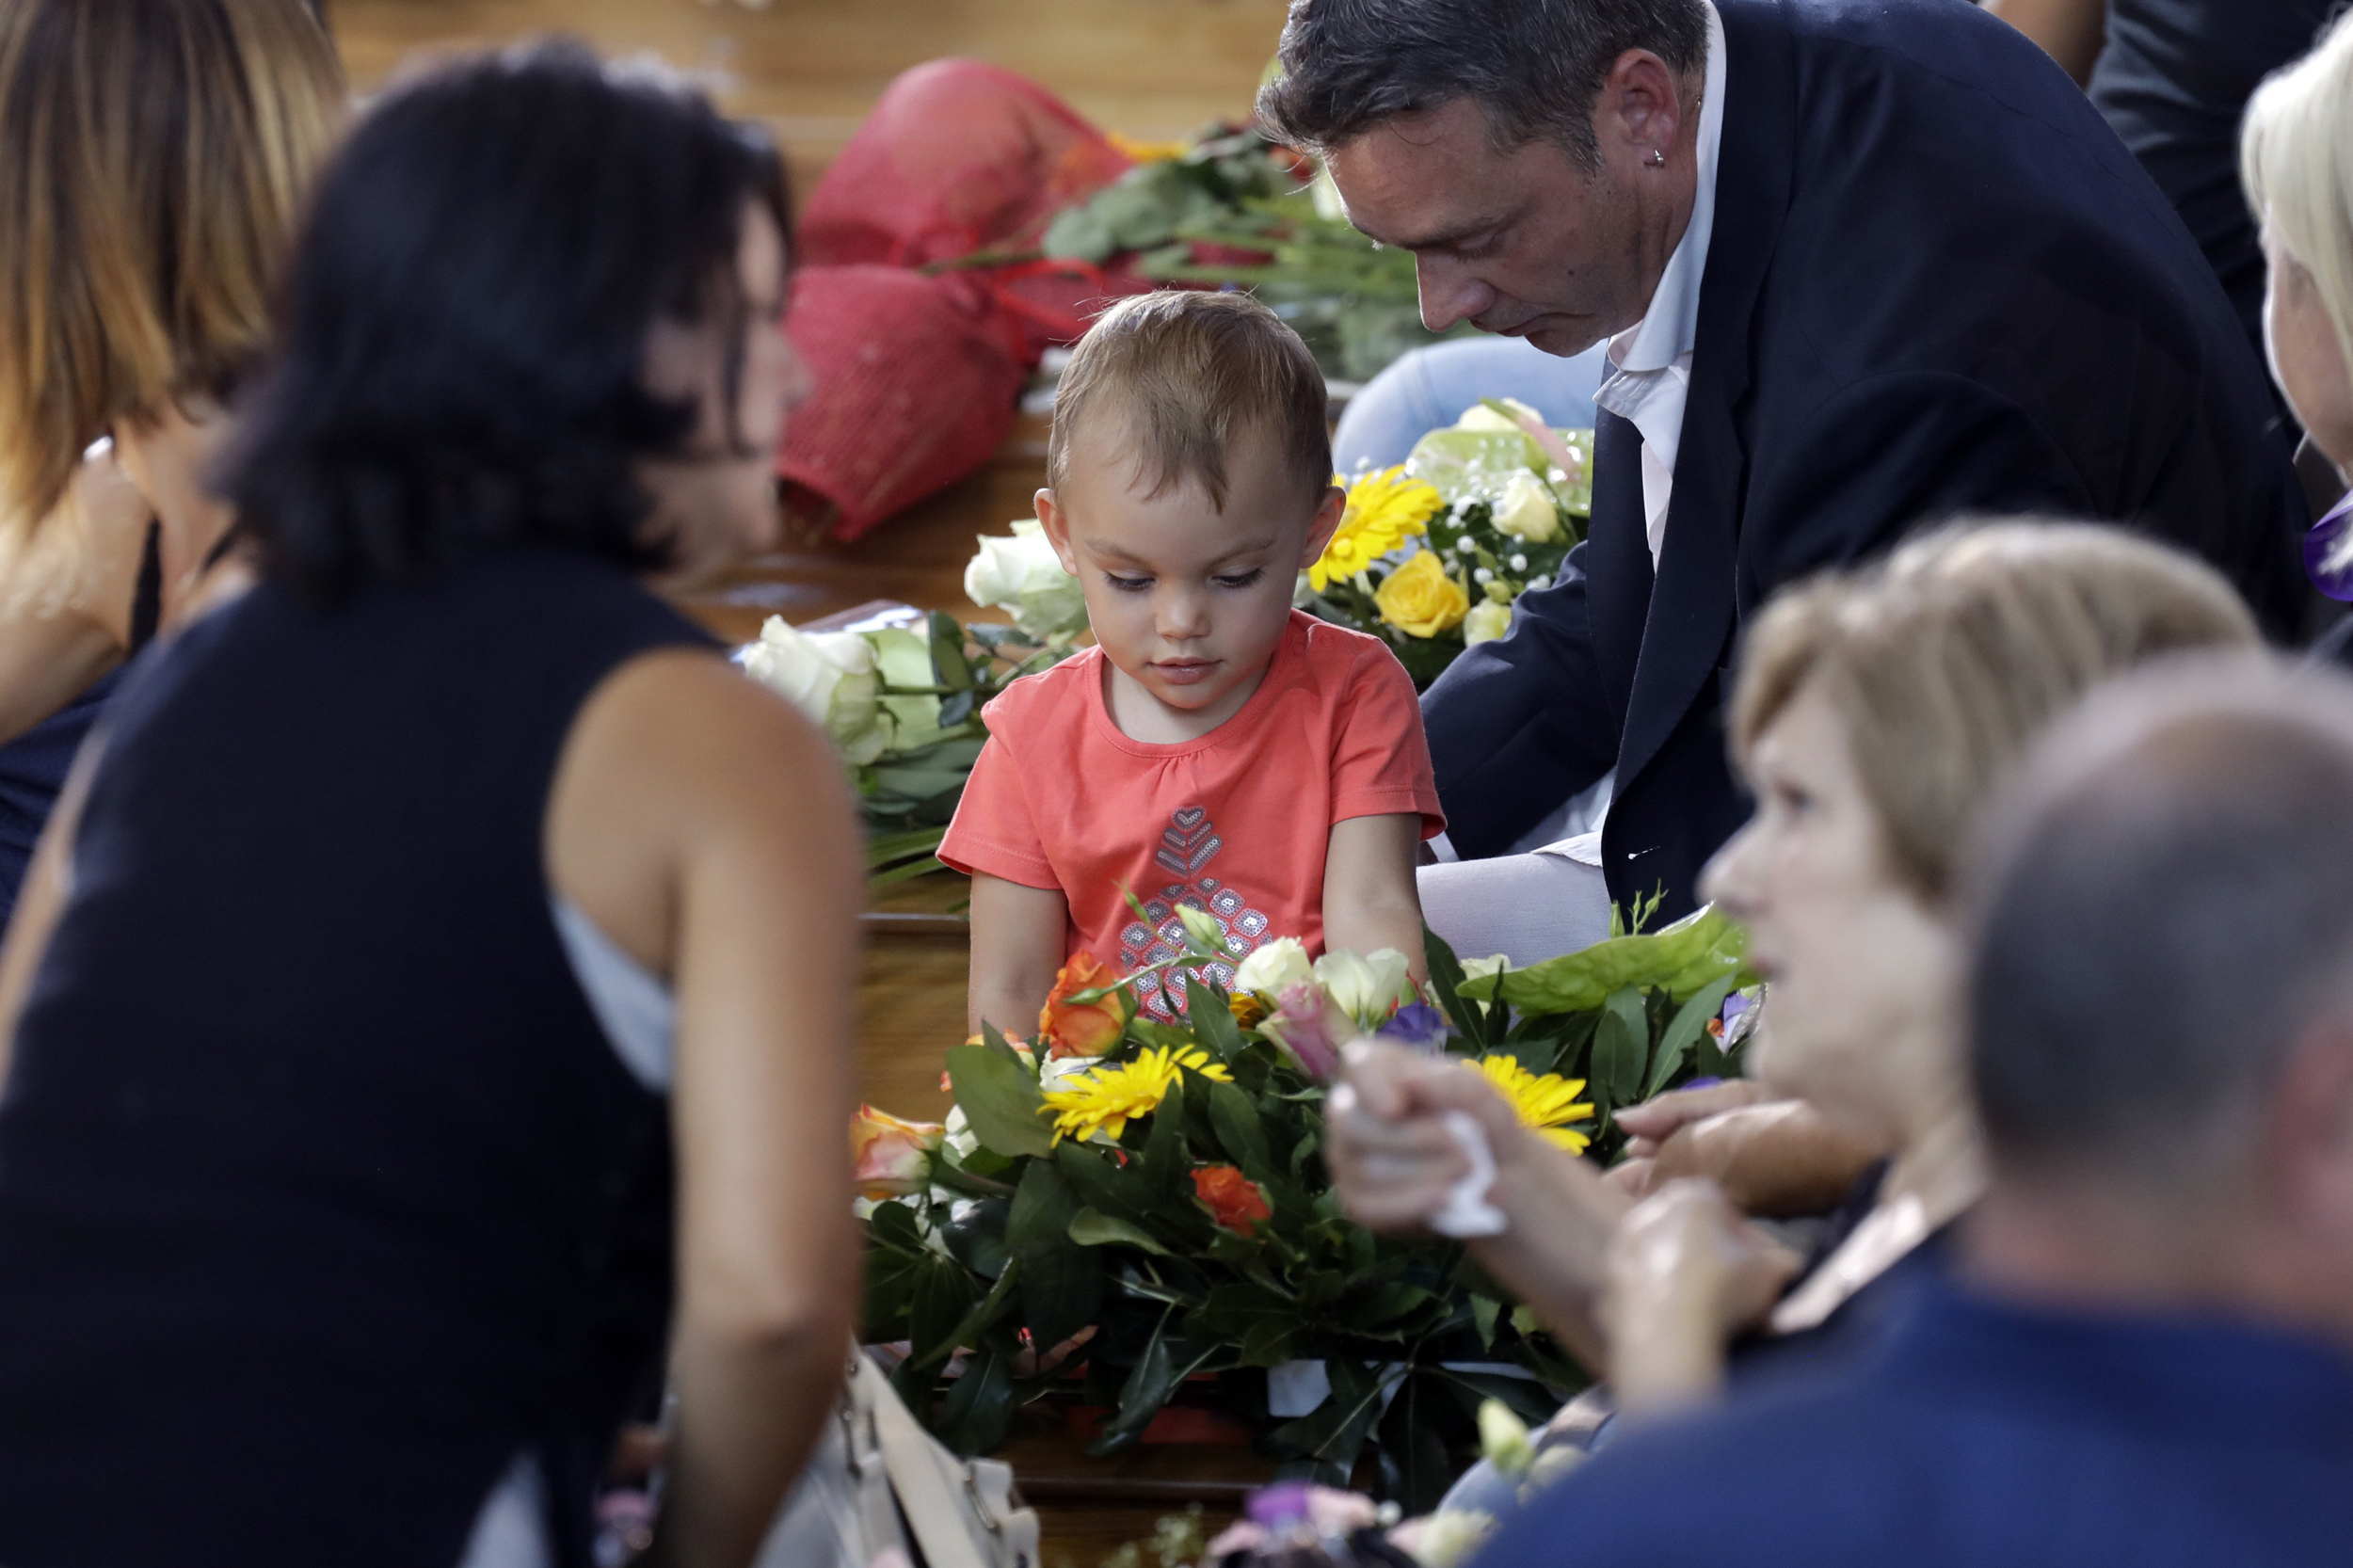 Italy mourns earthquake victims in mass funeral izmirmasajfo